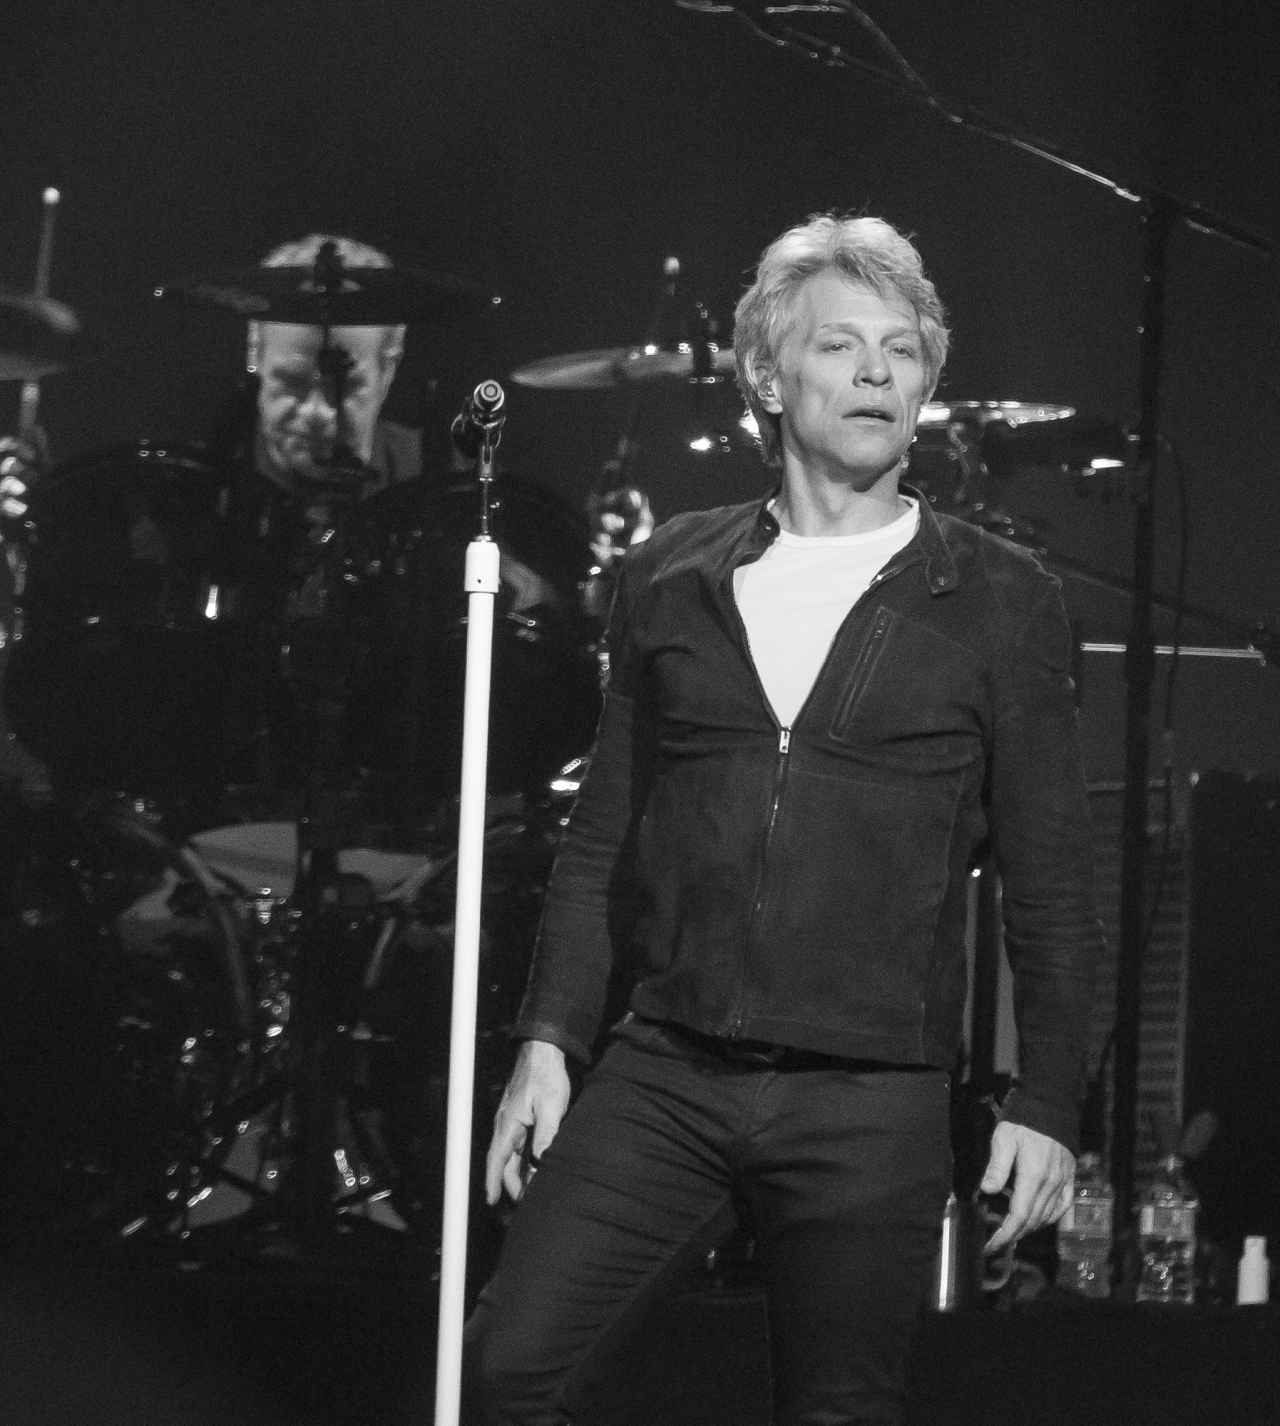 BonJovi with Soltribe Concert Photos from AT&TCenter